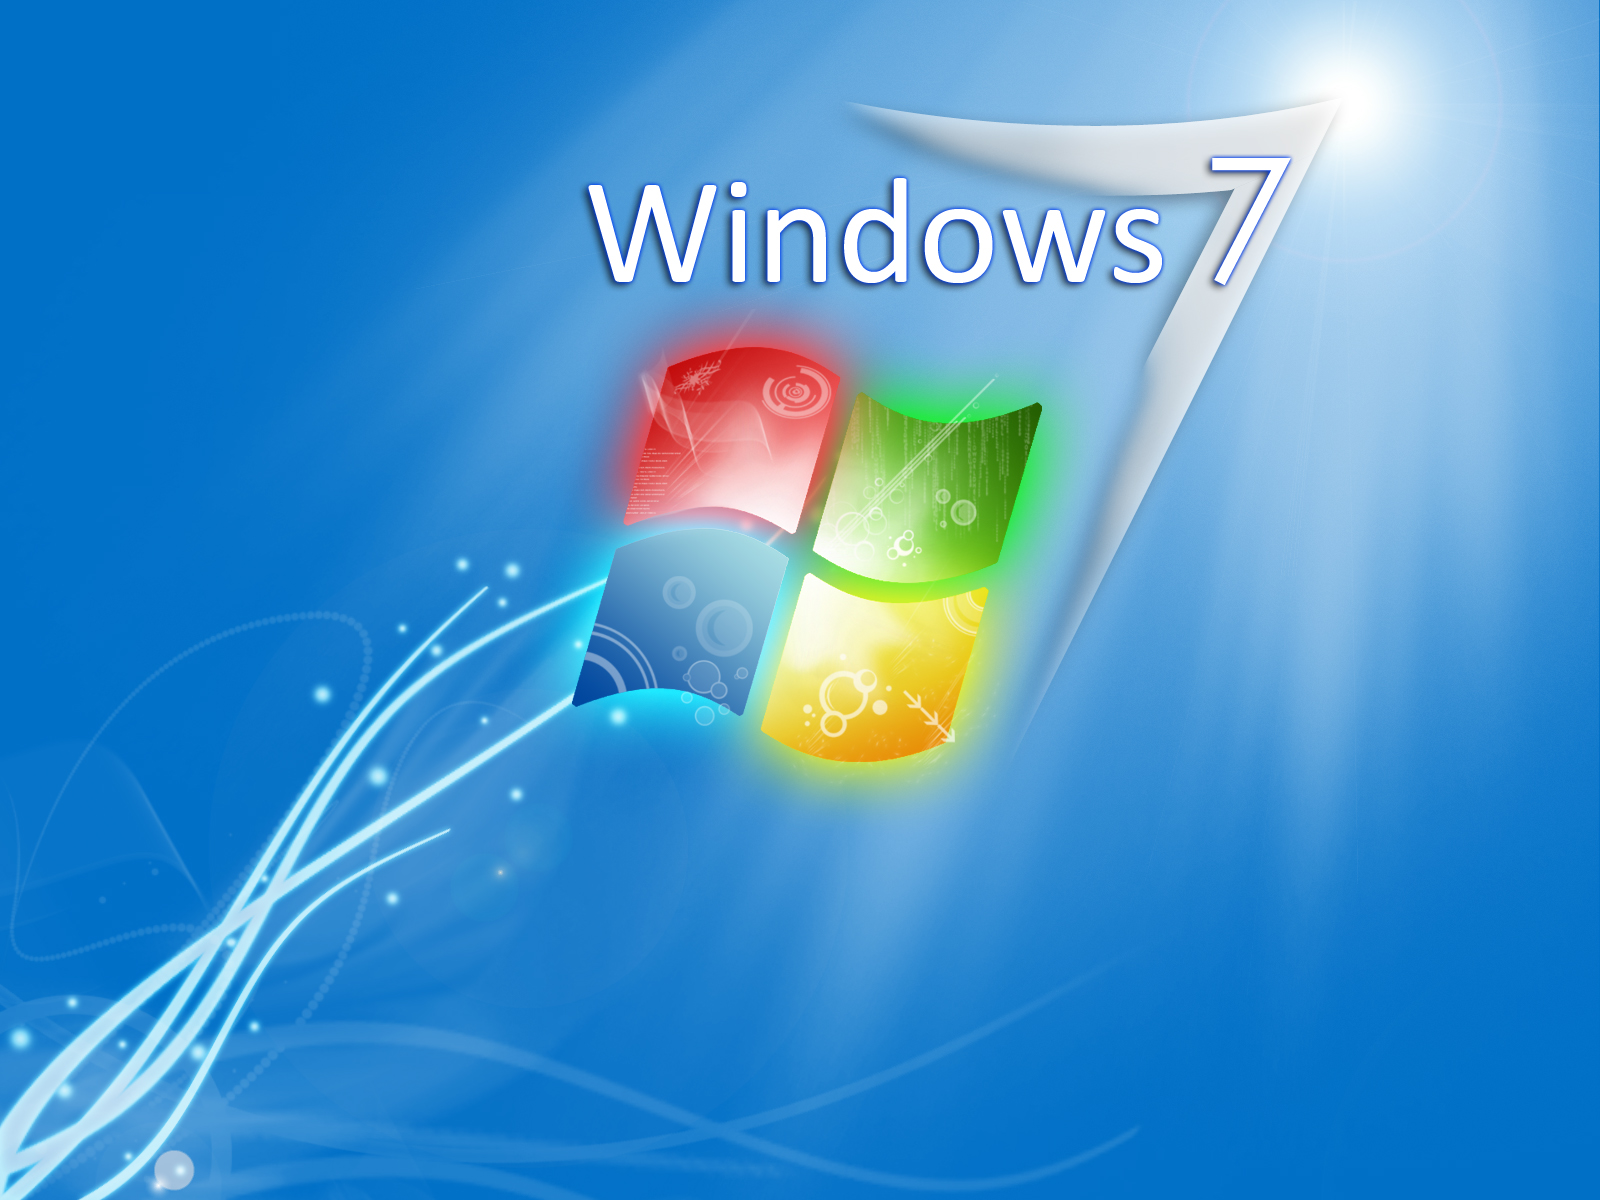 window 7 hd wallpaper hd wallpapers of windows 7